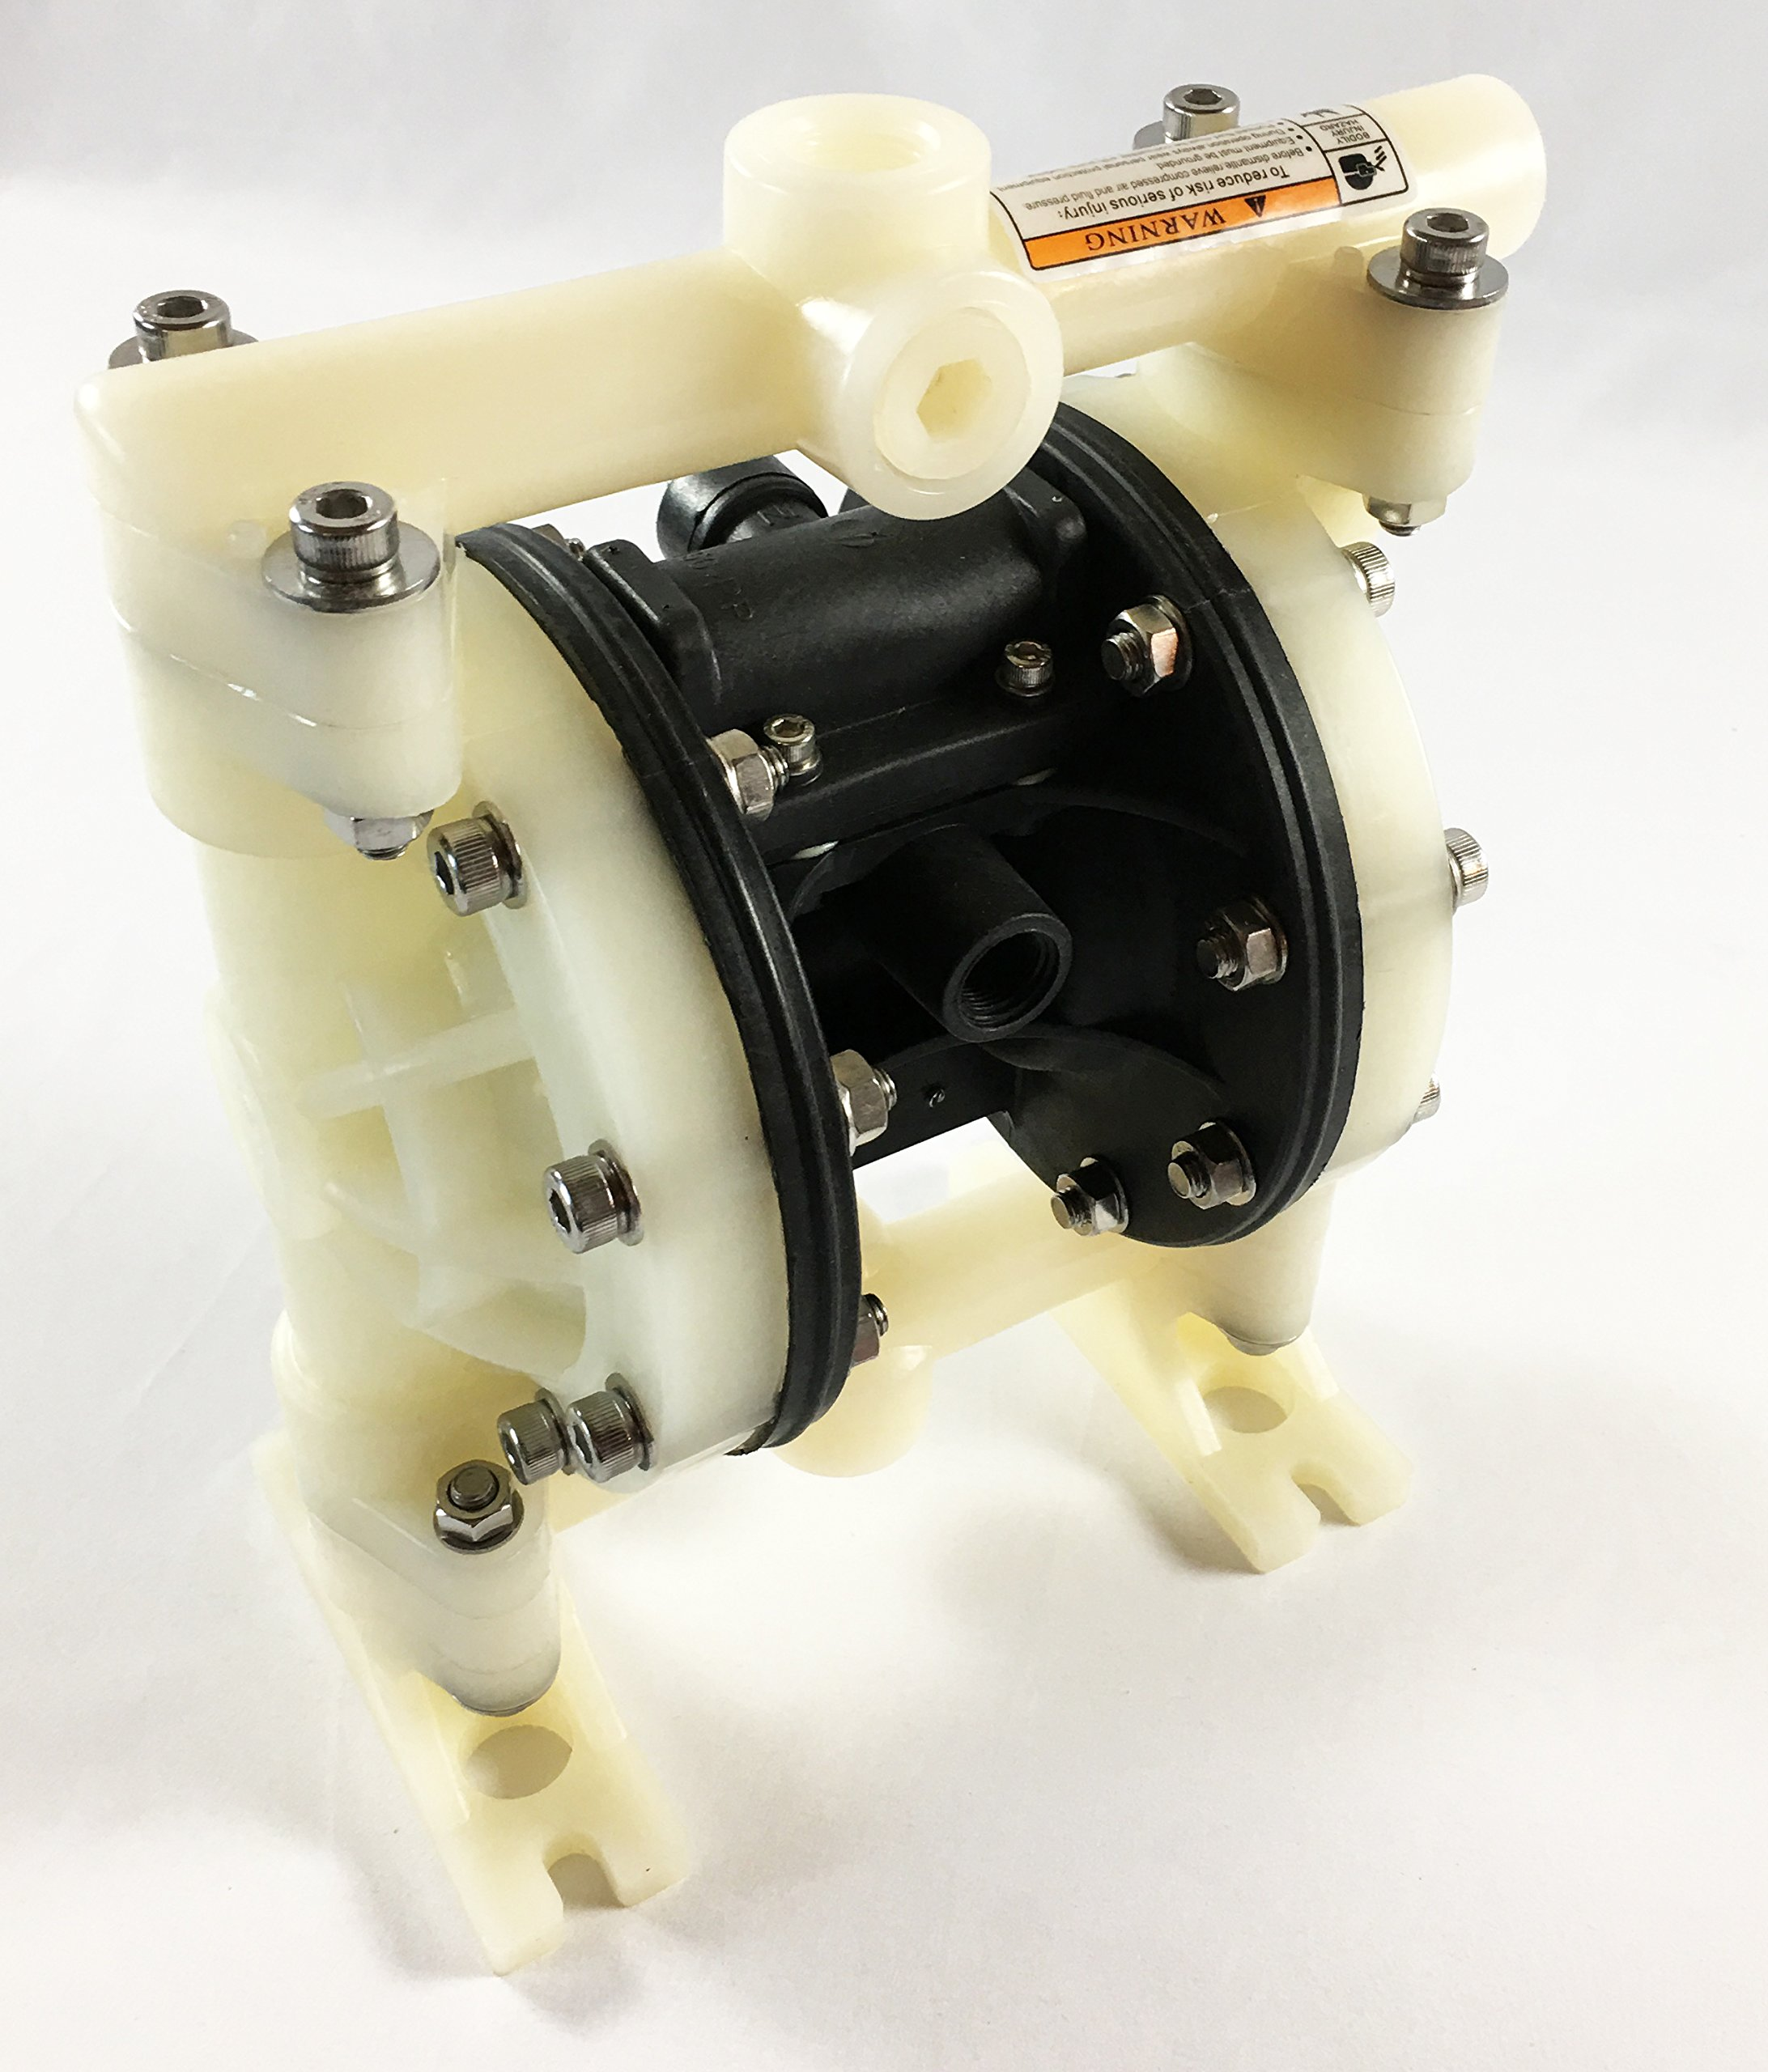 Double Diaphragm Air Pump PII.50 Chemical Industrial Polypropylene 1/2'' or 3/4'' NPT Inlet / Outlet by Plating International (Image #1)